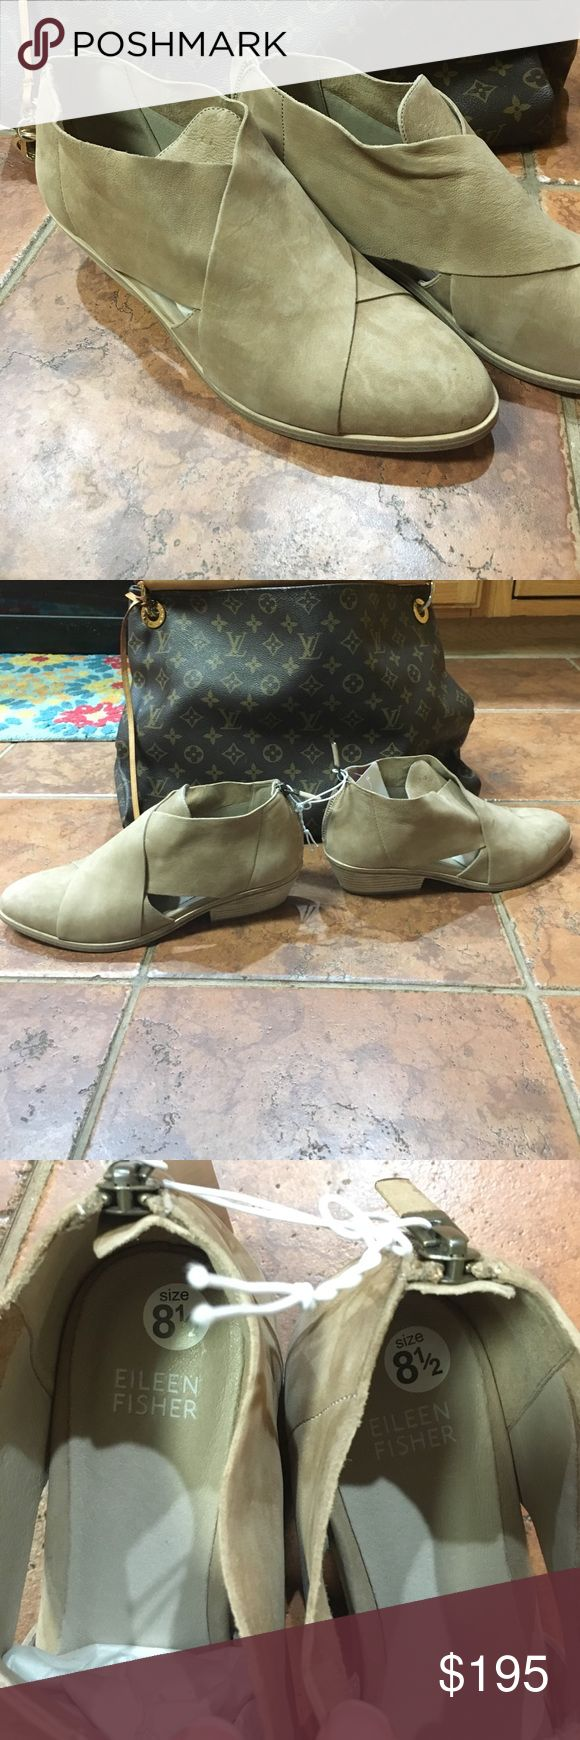 🎉 Eileen Fisher shoes Nude suede Eileen Fisher ladies shoes. They are new without box.  Have been tried on in store so the sole of one shoe is dirty as seen in picture. I was hoping to fit the 8.5, but need larger size. Eileen Fisher Shoes Ankle Boots & Booties